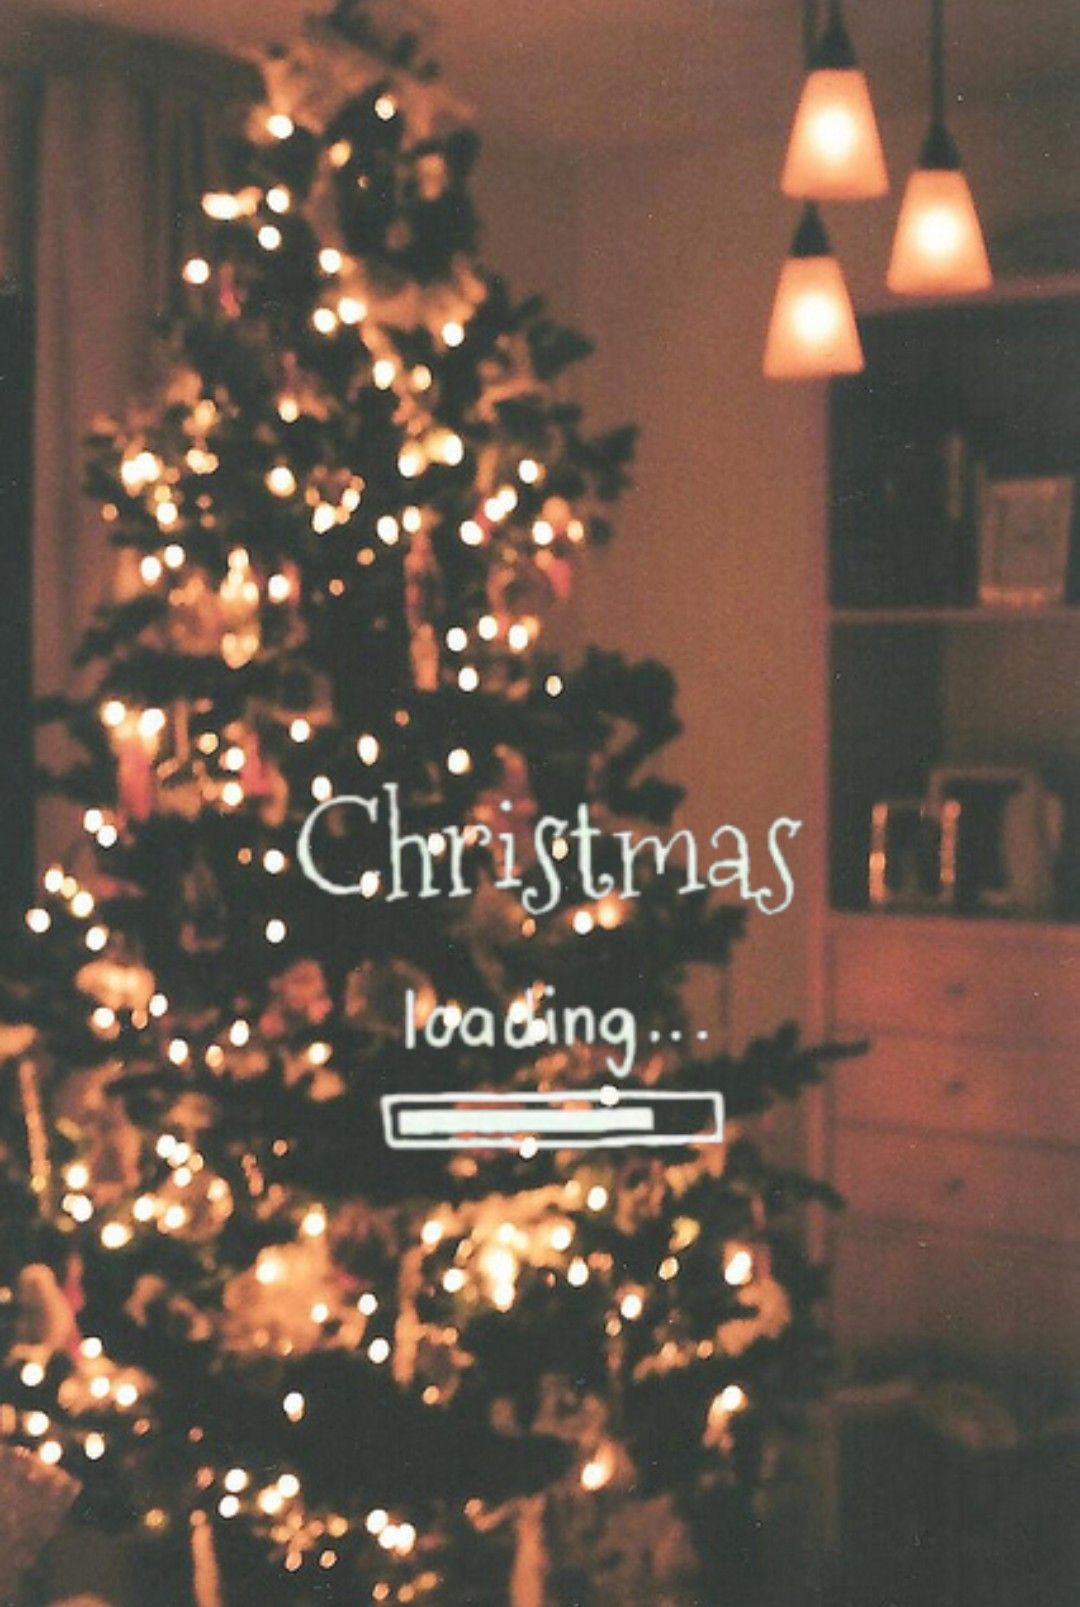 Pin By Agusia On X M A S Christmas Wallpapers Tumblr Cute Christmas Wallpaper Christmas Tumblr